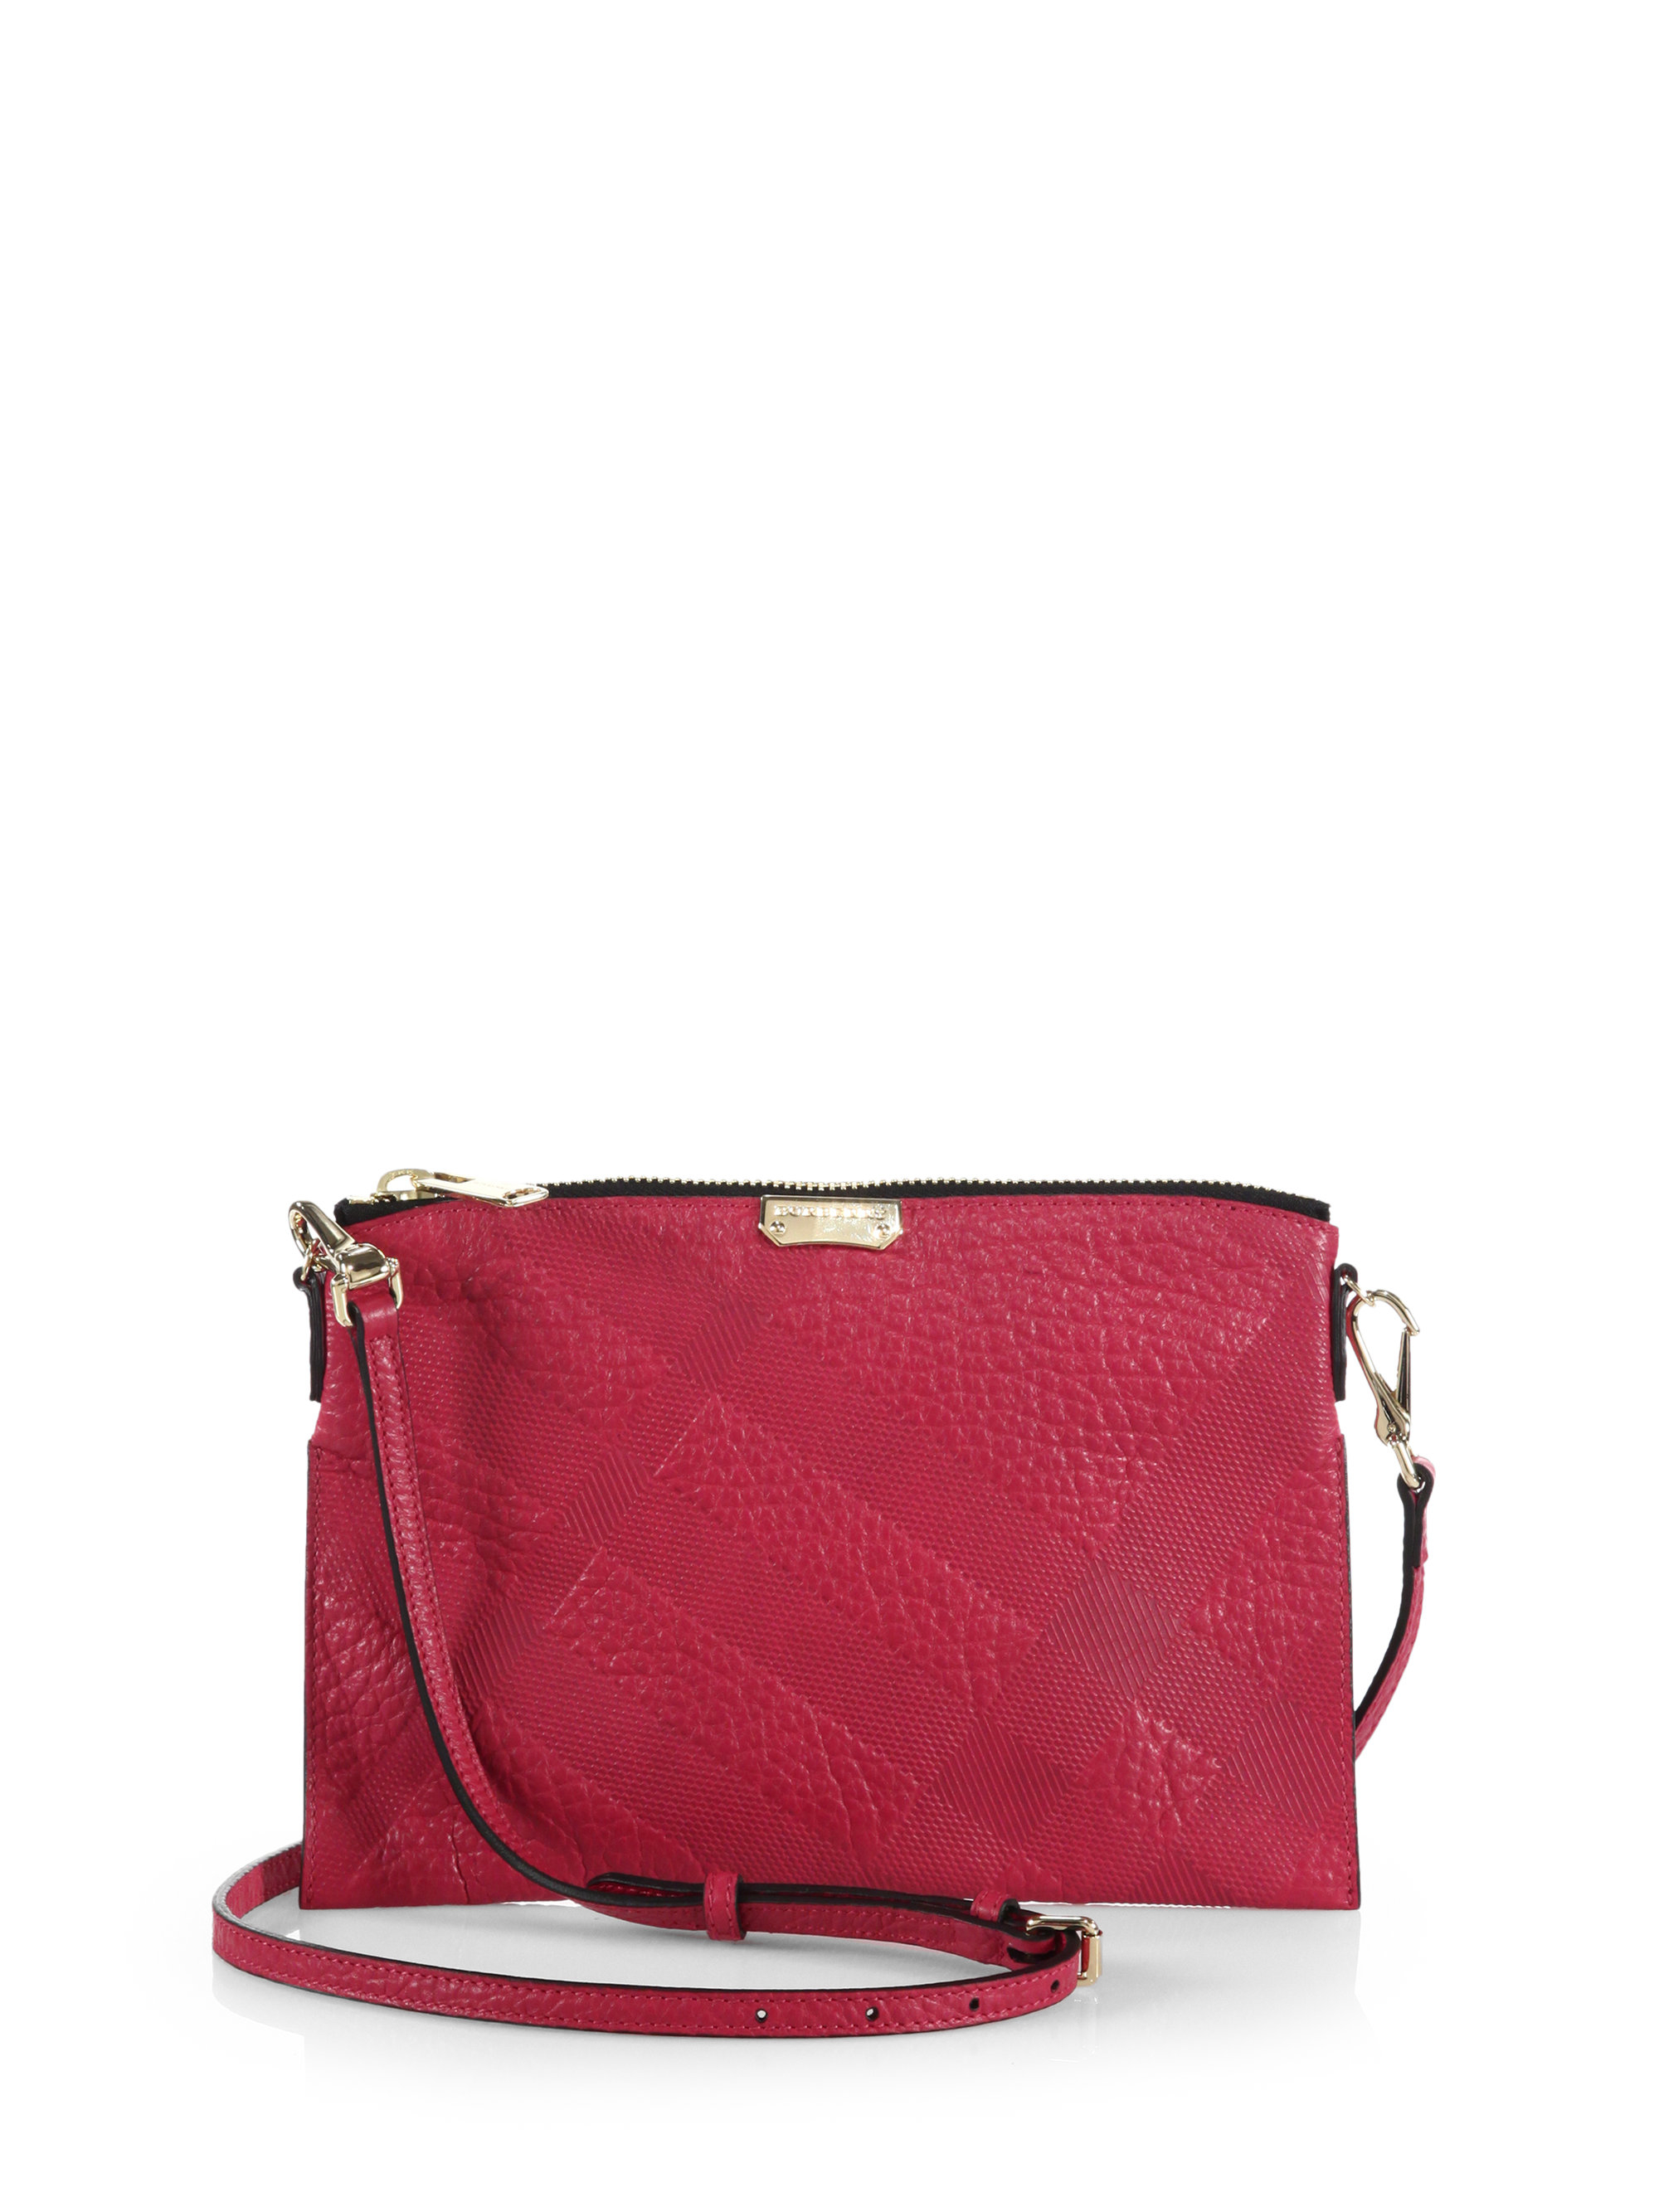 Lyst - Burberry Peyton Plaid-Embossed Crossbody Bag in Pink db7e808a17fb7